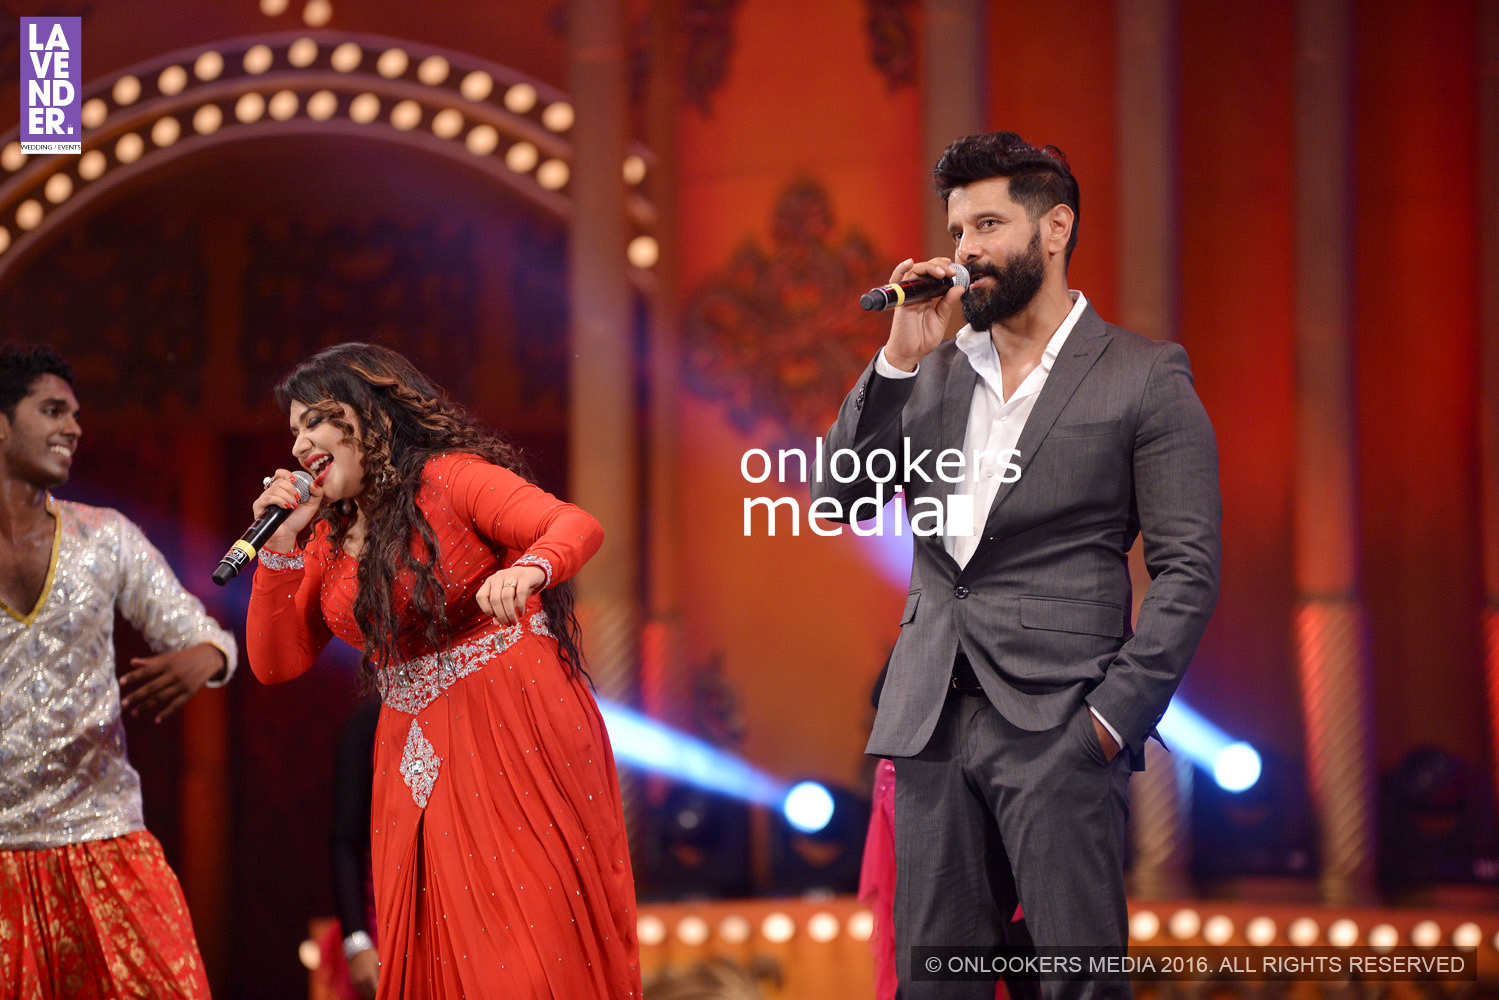 http://onlookersmedia.in/wp-content/uploads/2016/02/Vikram-at-Asianet-Film-Awards-2016-61.jpg